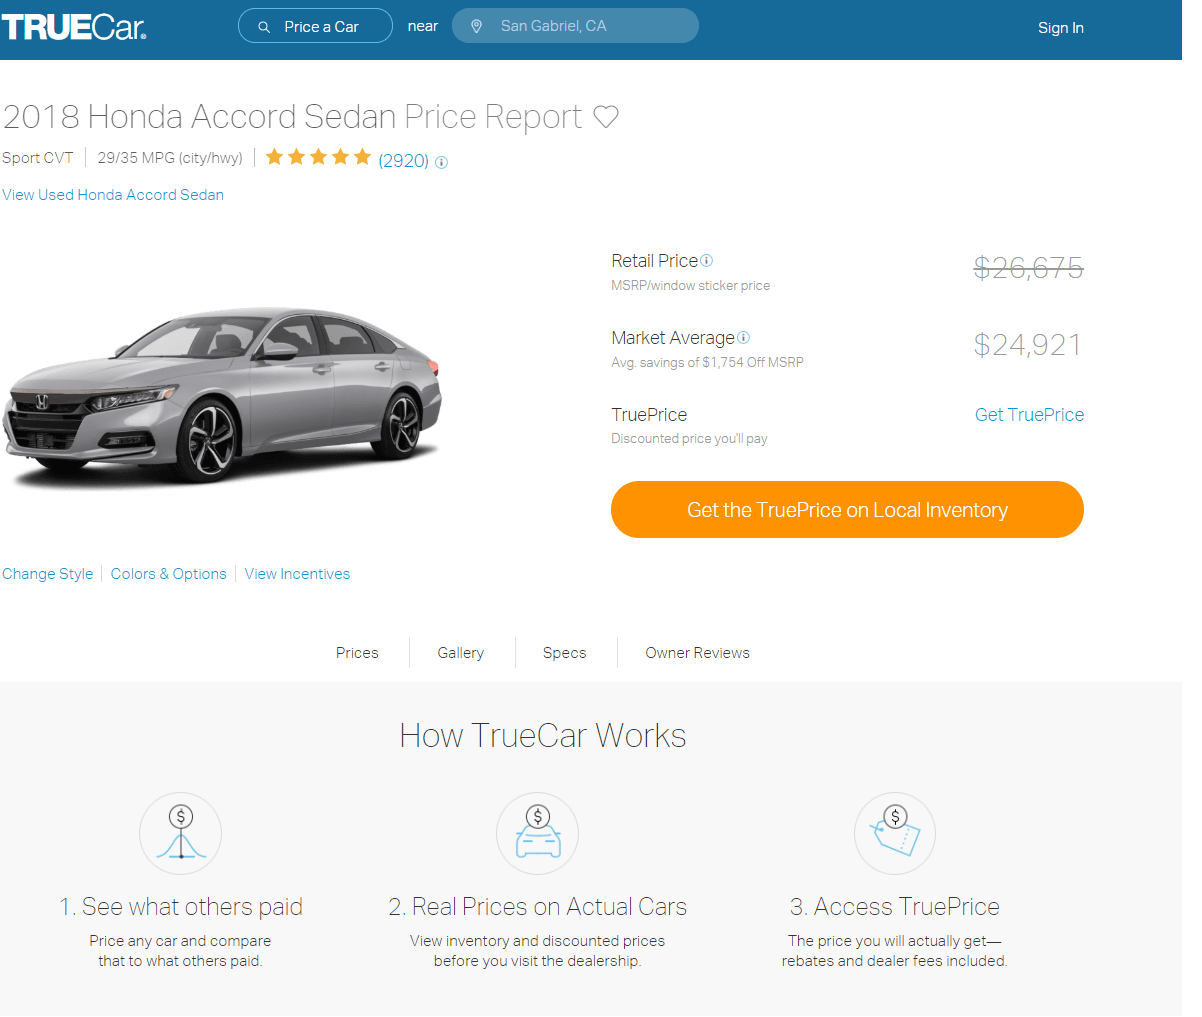 What Others Paid For Car >> 4 Easy Steps To Buy Or Lease A New Car Like A Pro Sharing Economy